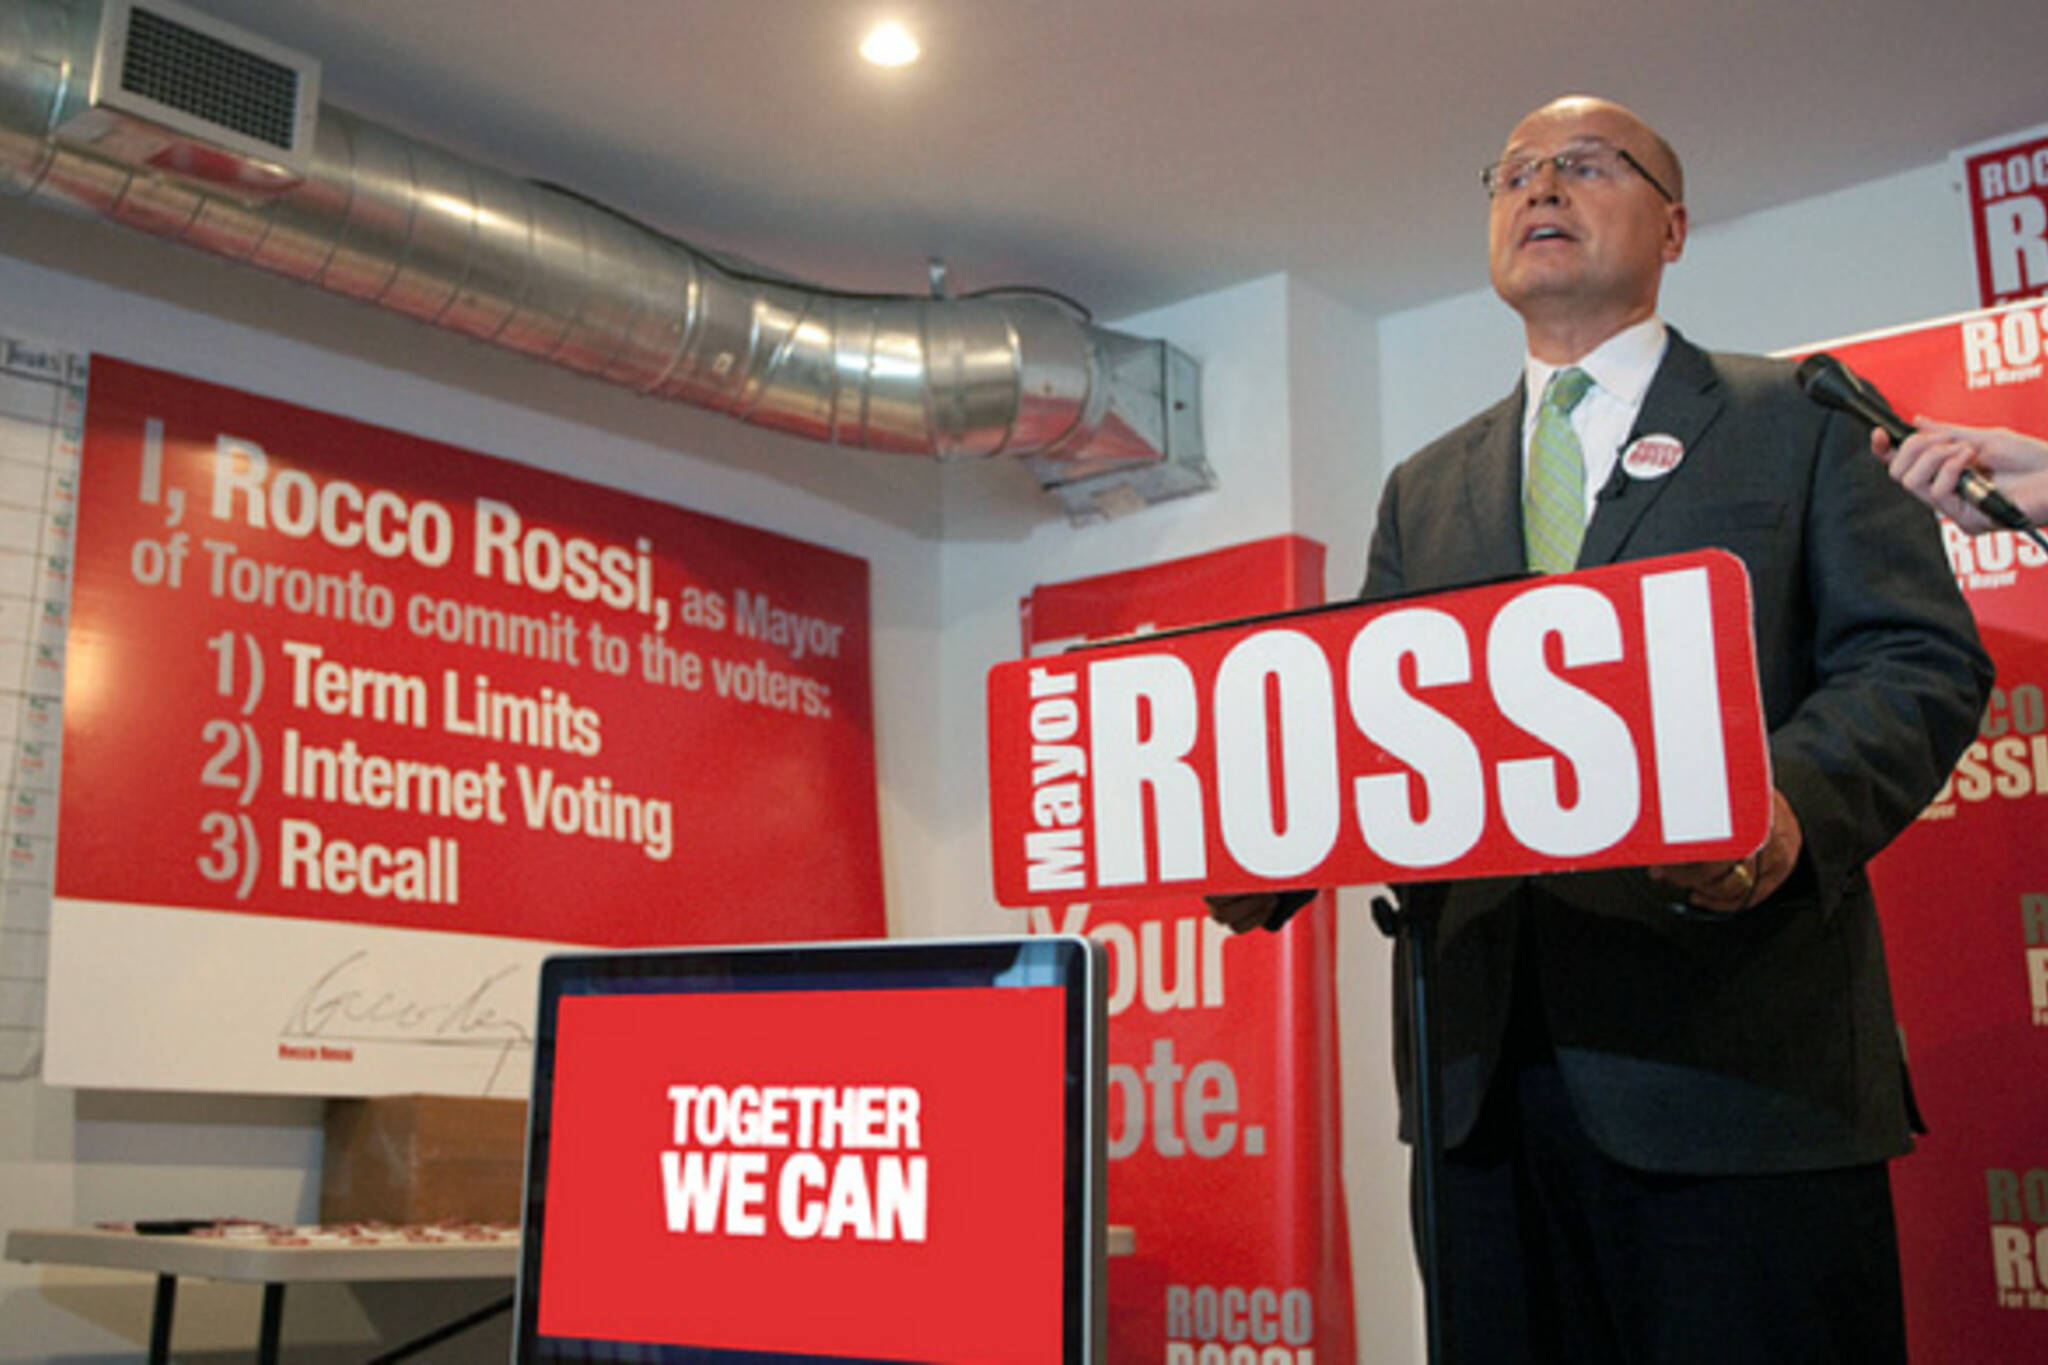 Rocco Rossi drops out mayoral race